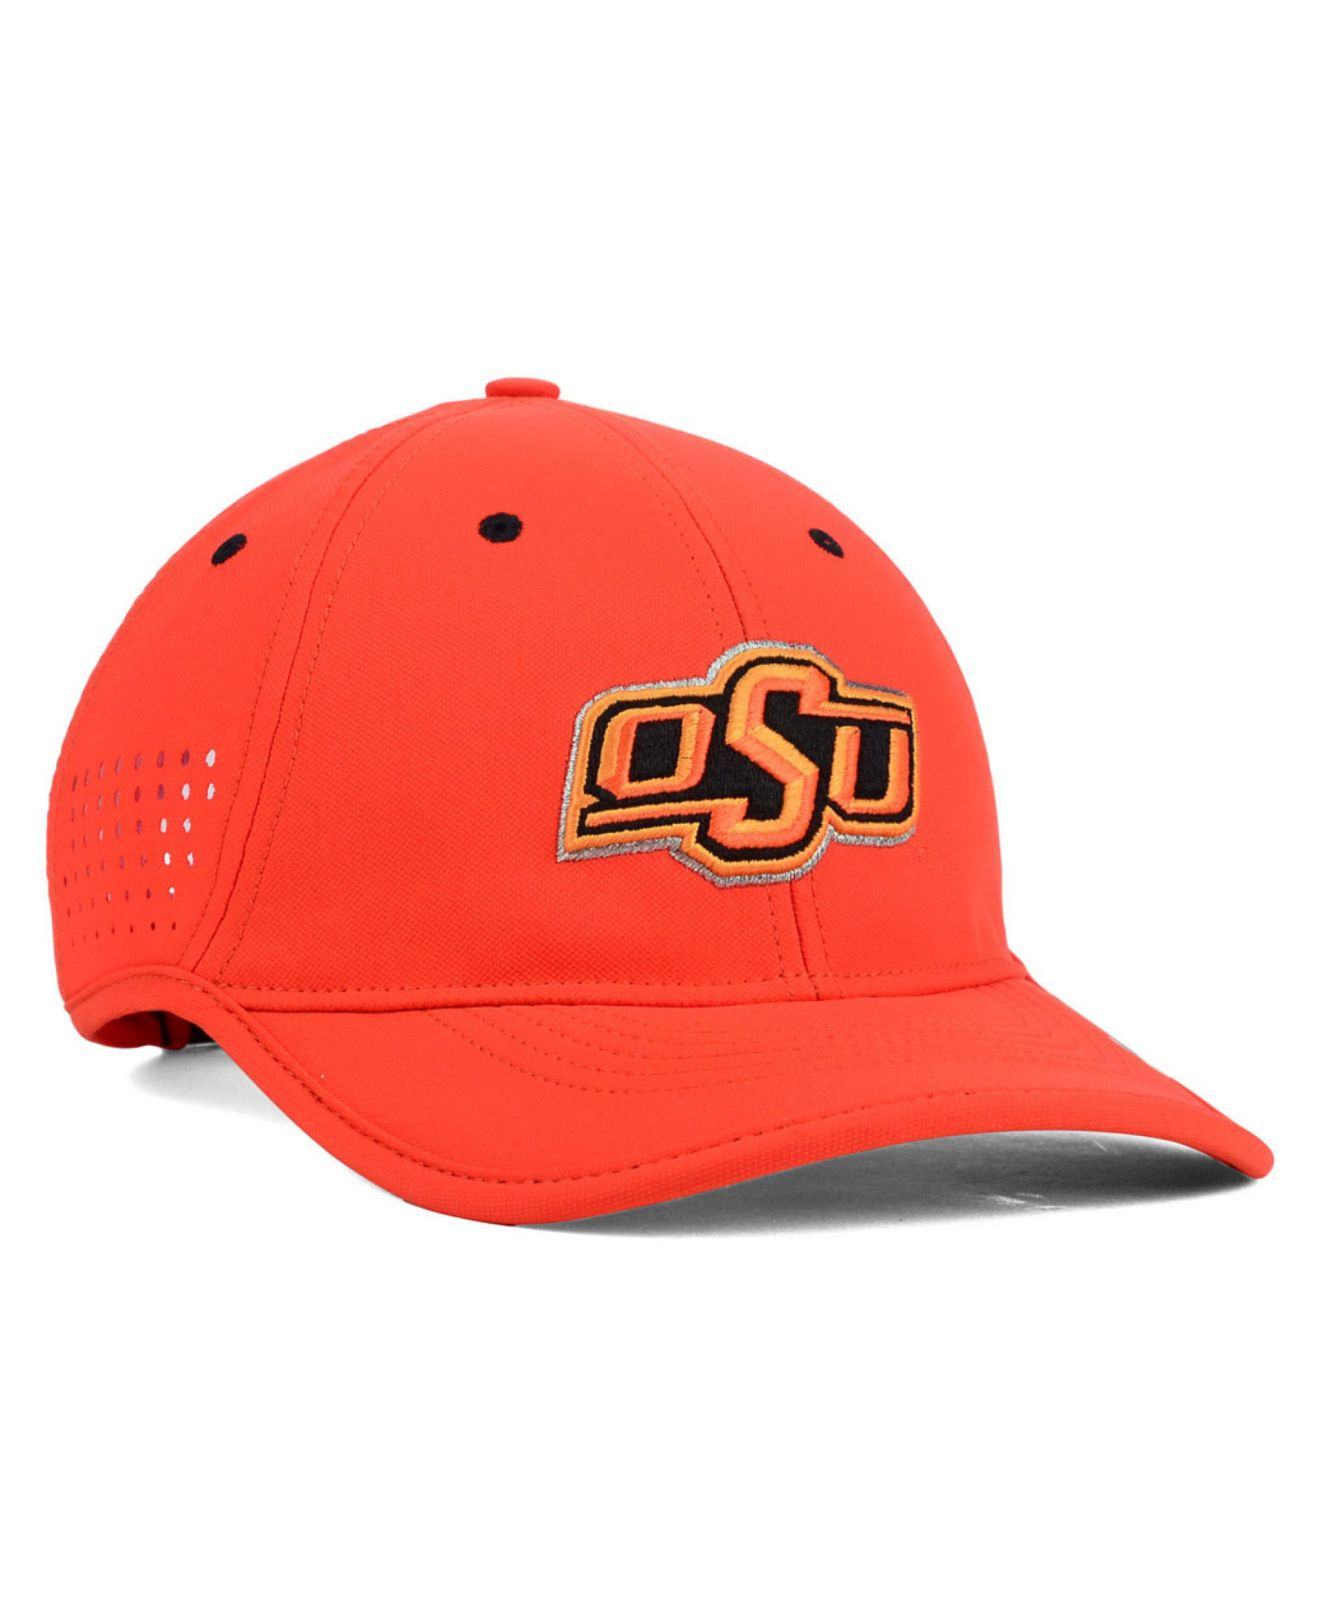 bbec99fdc5d Lyst - Nike Oklahoma State Cowboys Coaches Dri-fit Cap in Red for Men